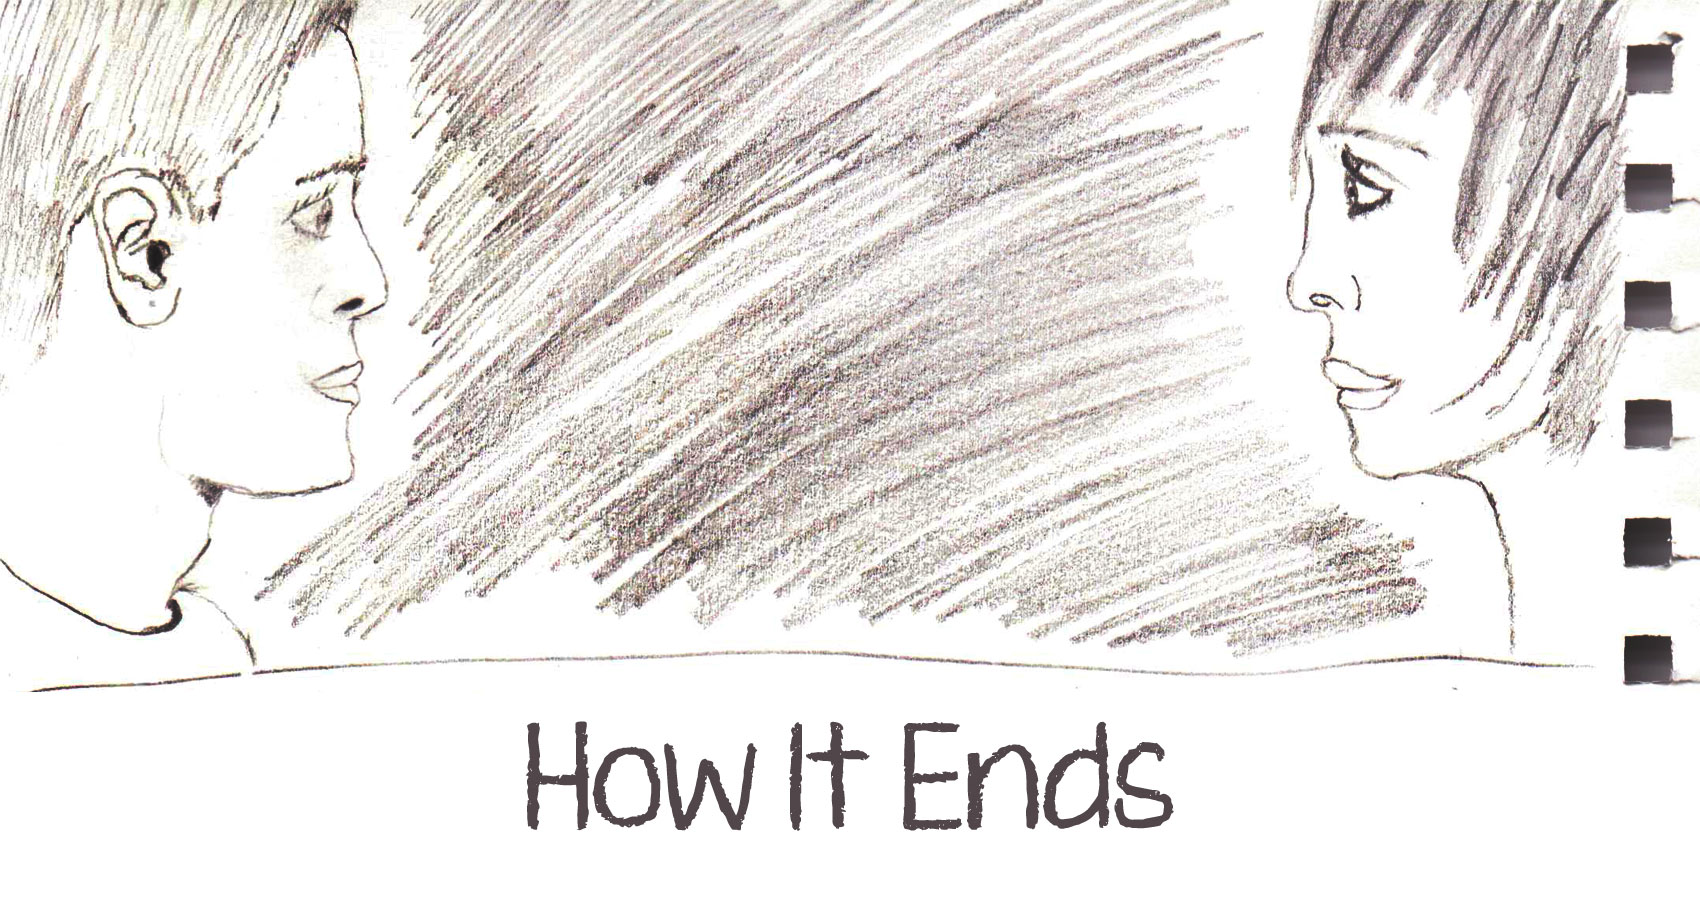 How It Ends by J. T. Wilson at Spillwords.com